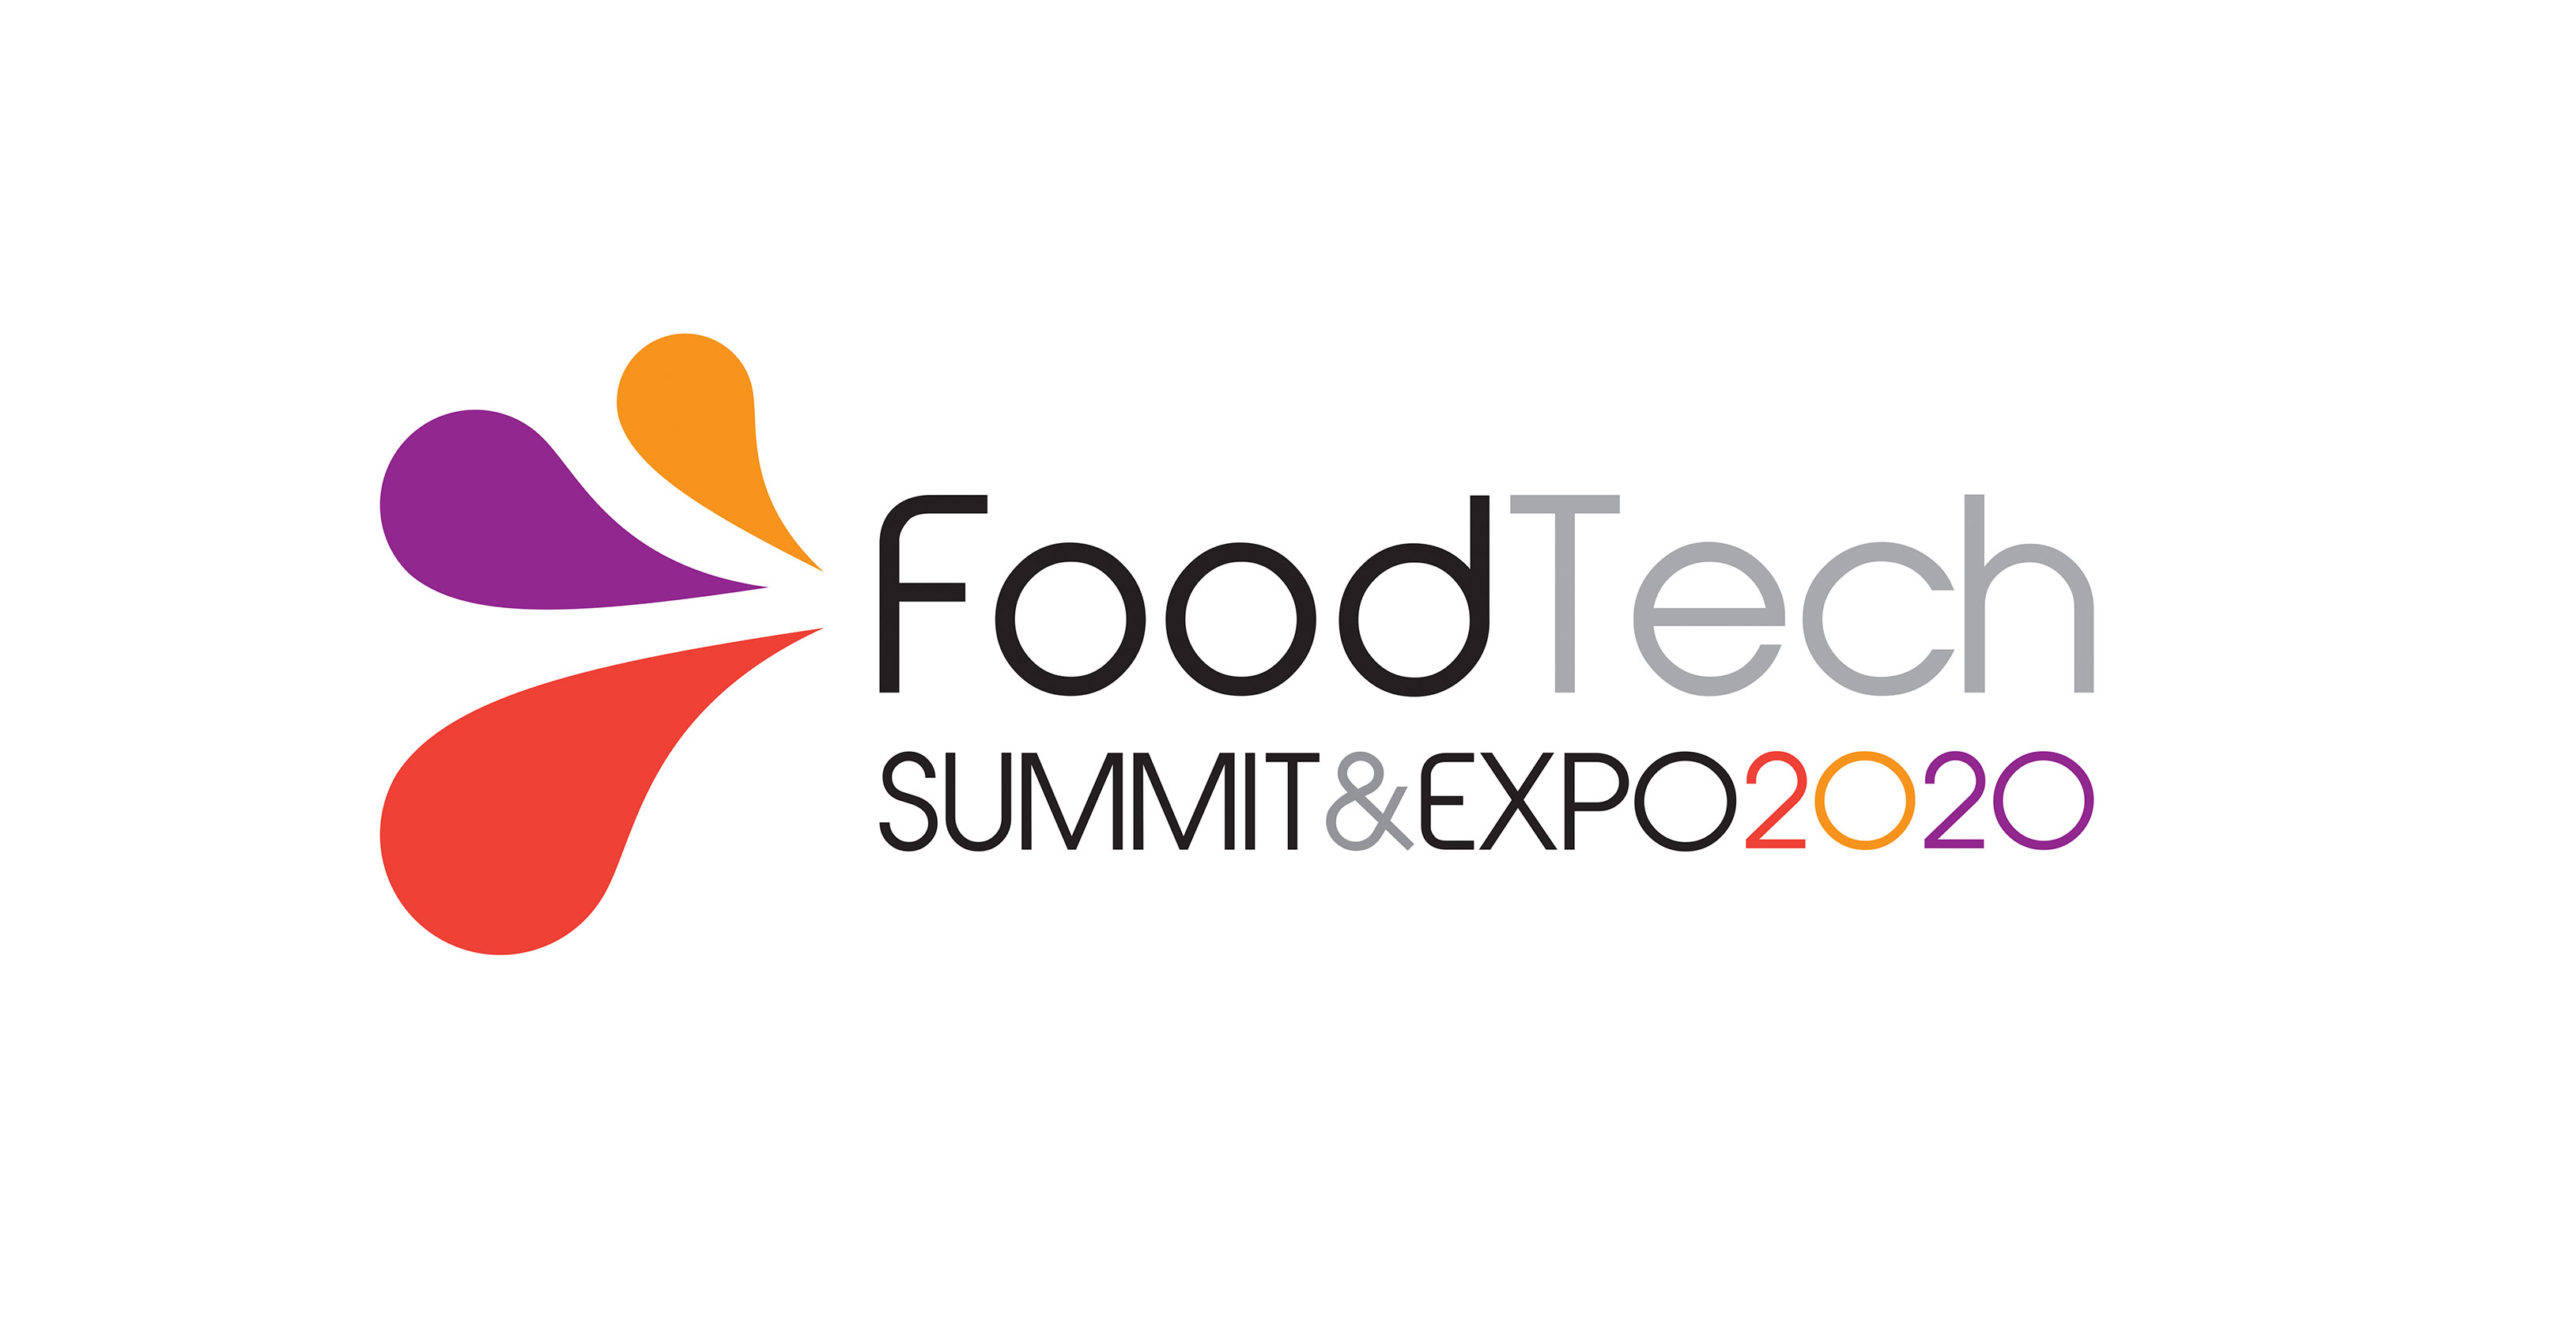 Food Tech Summit & Expo 2020